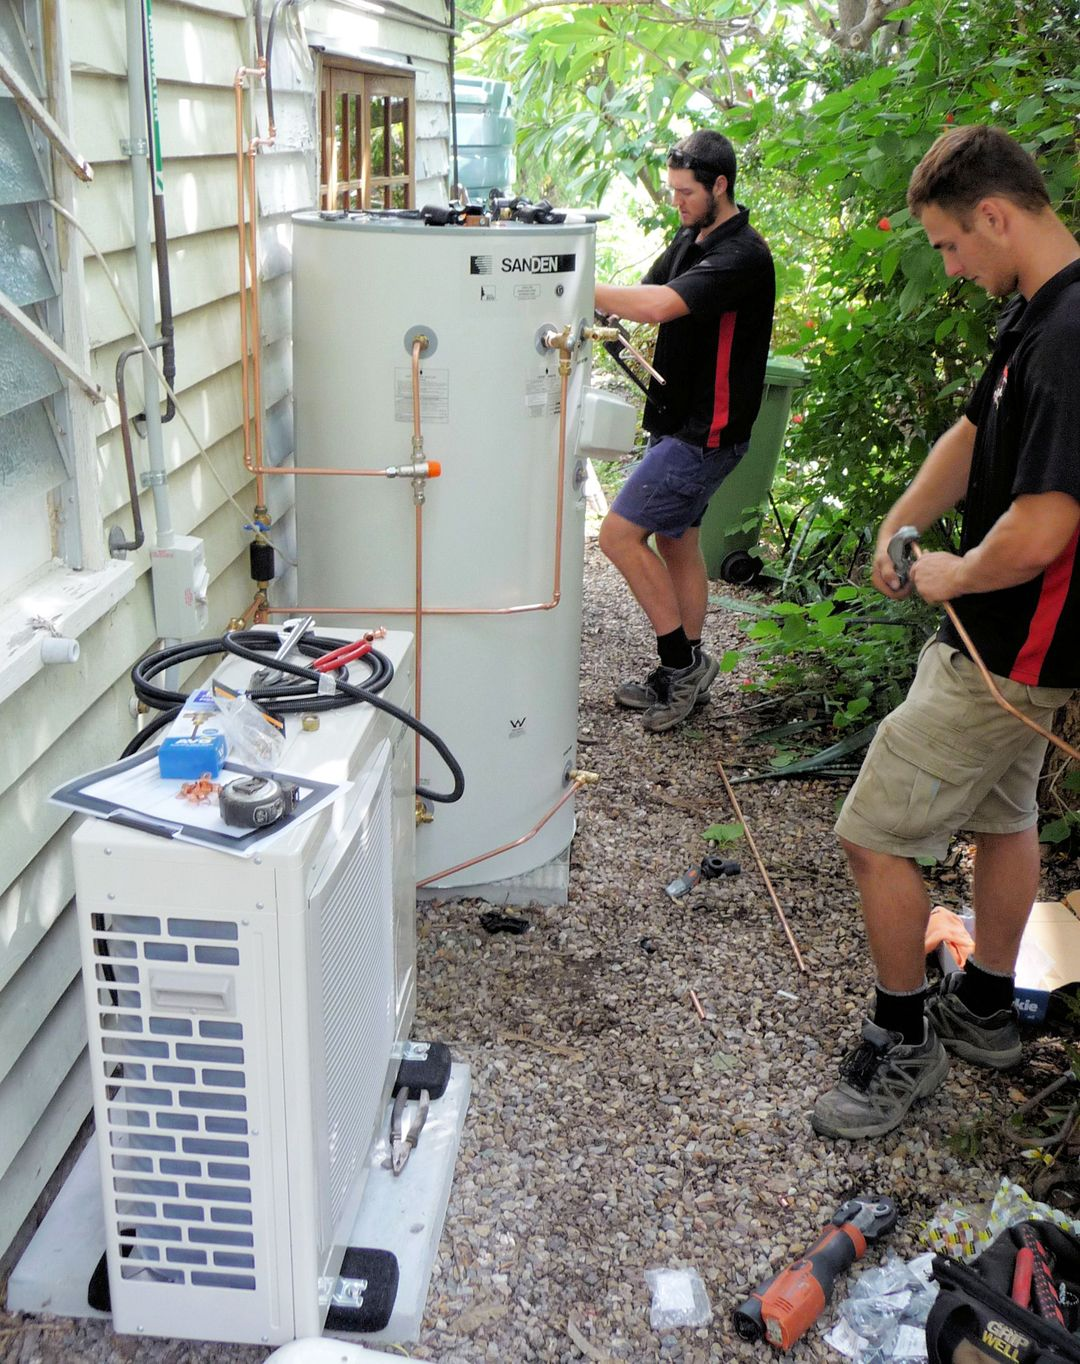 Photo Of Plumbers Installing A Sanden Heat Pump Water Heater Outside Compressor Heat Pump Water Hea Heat Pump Water Heater Water Heater Split System Heat Pump